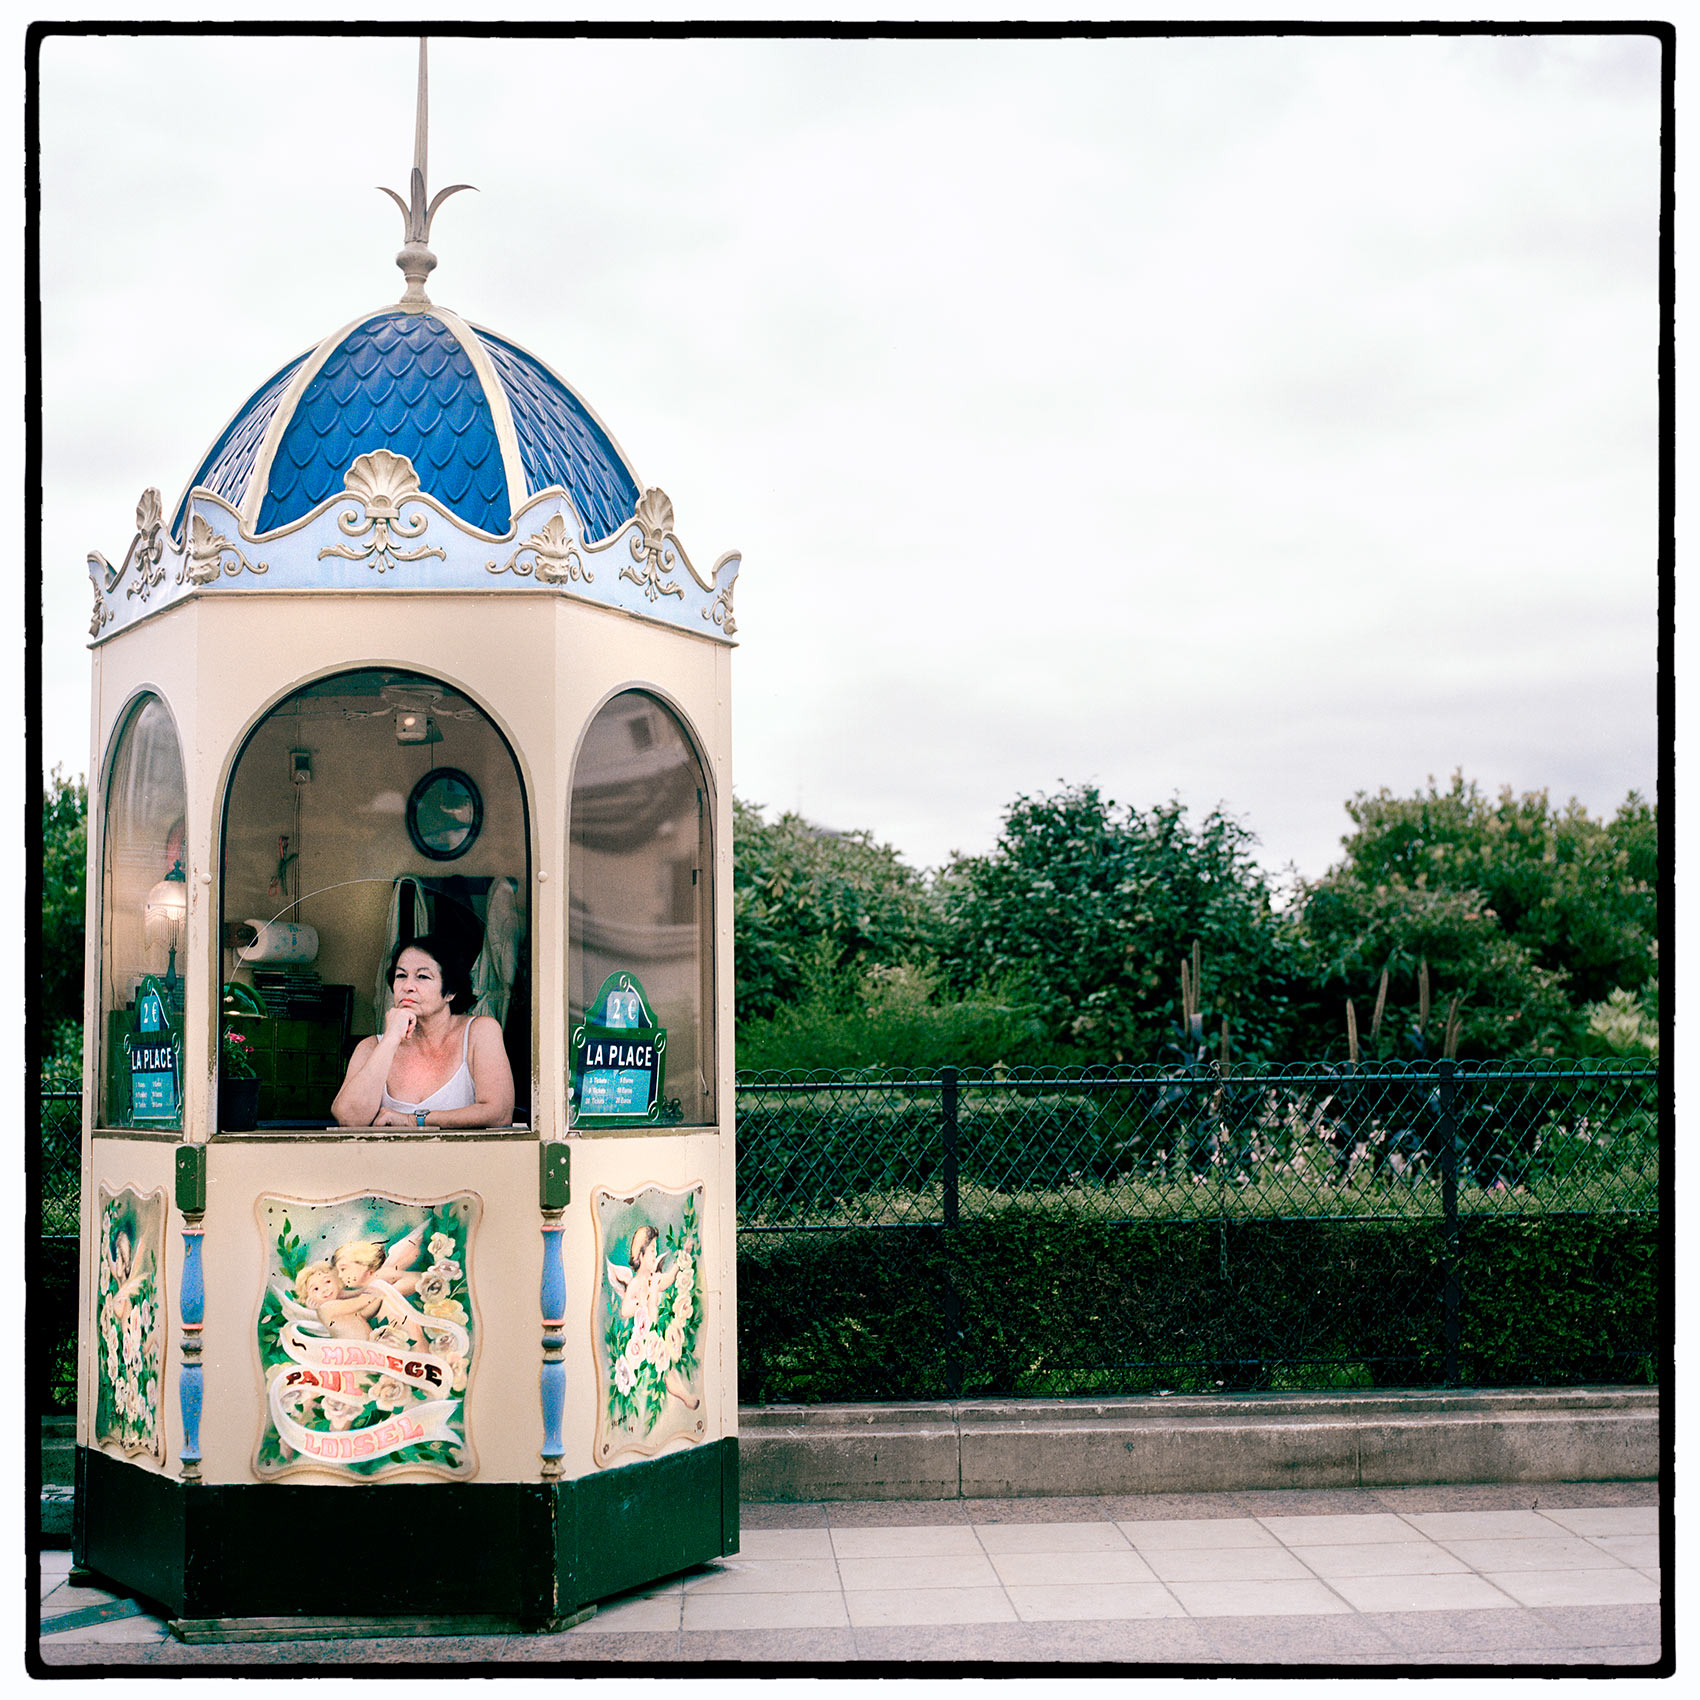 a-ticket-taker-waits-inside-her-booth-outiside-a-fairground-in-paris-france